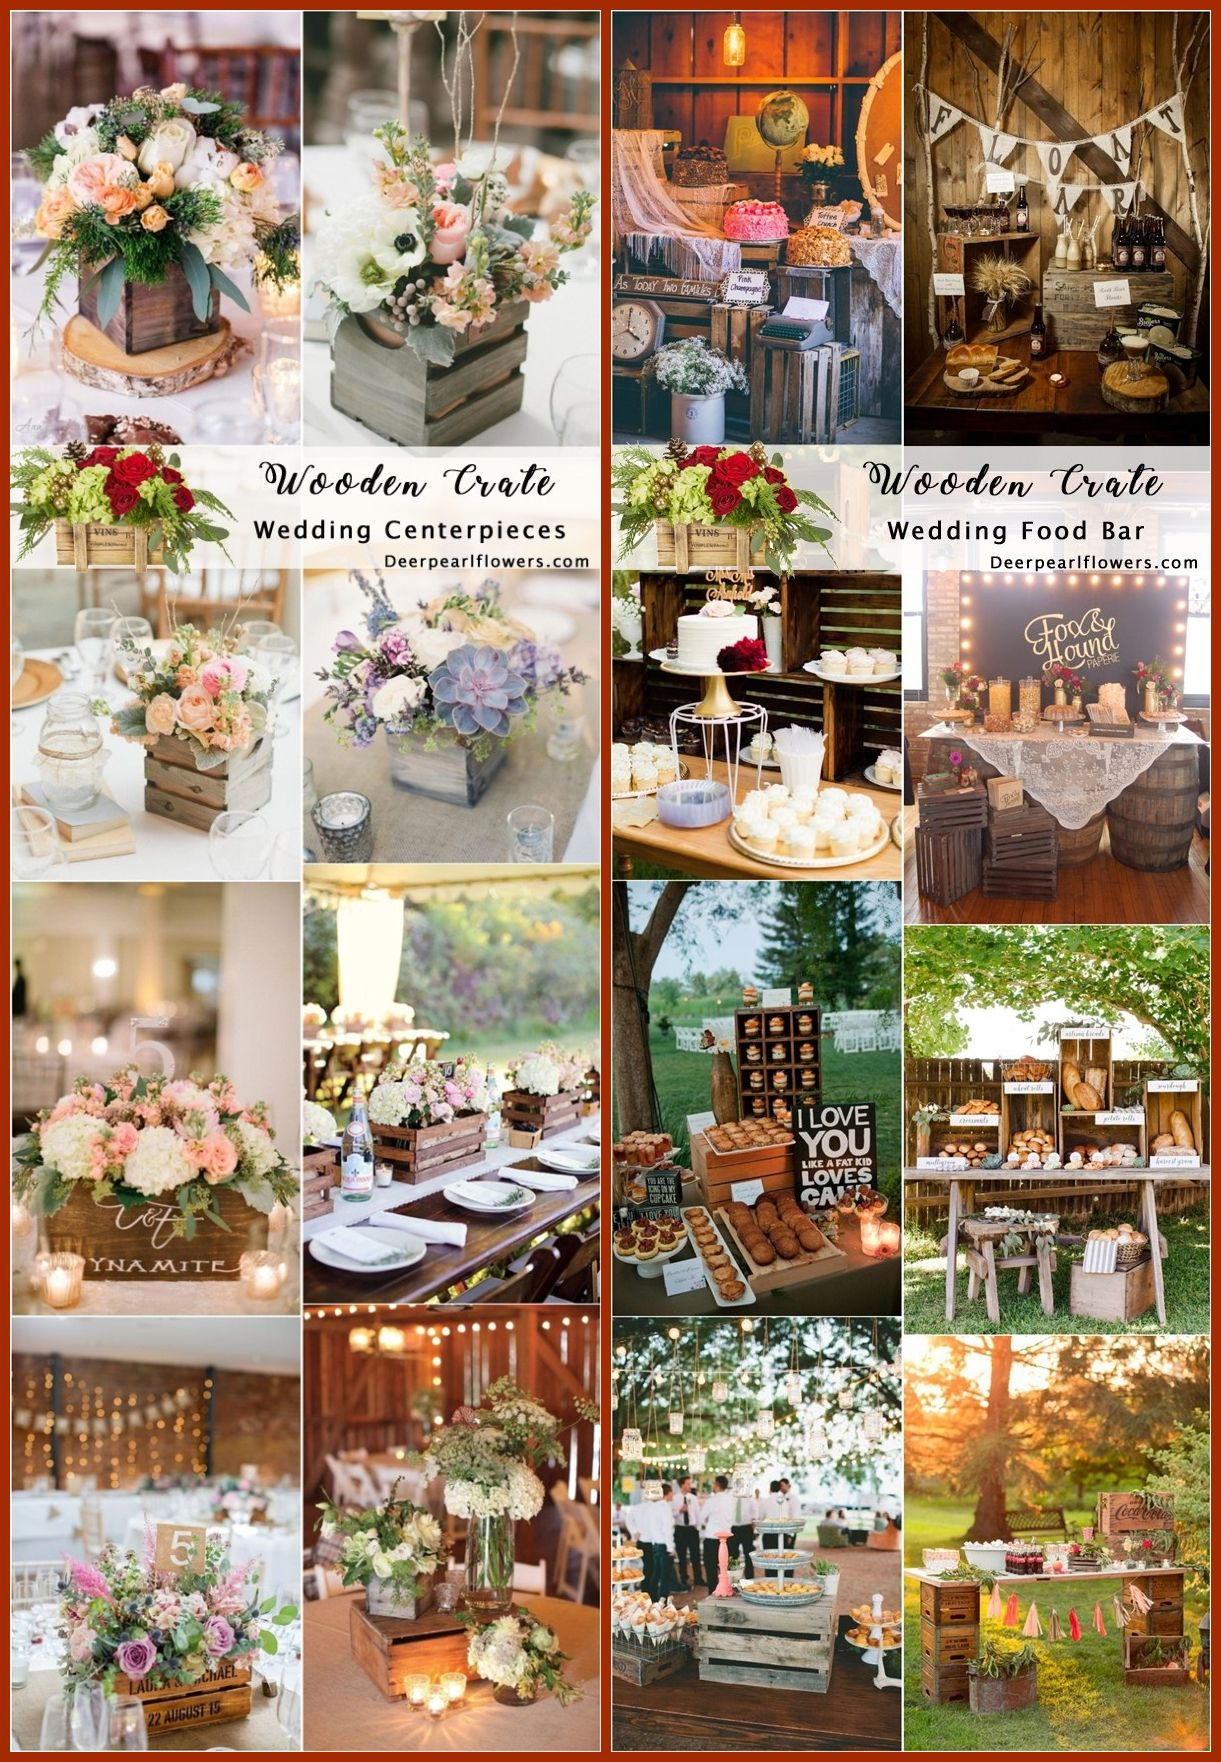 Wedding decorations using pallets october 2018 Rustic Woodsy Wedding Trend  Wooden Crates  Woodsy wedding